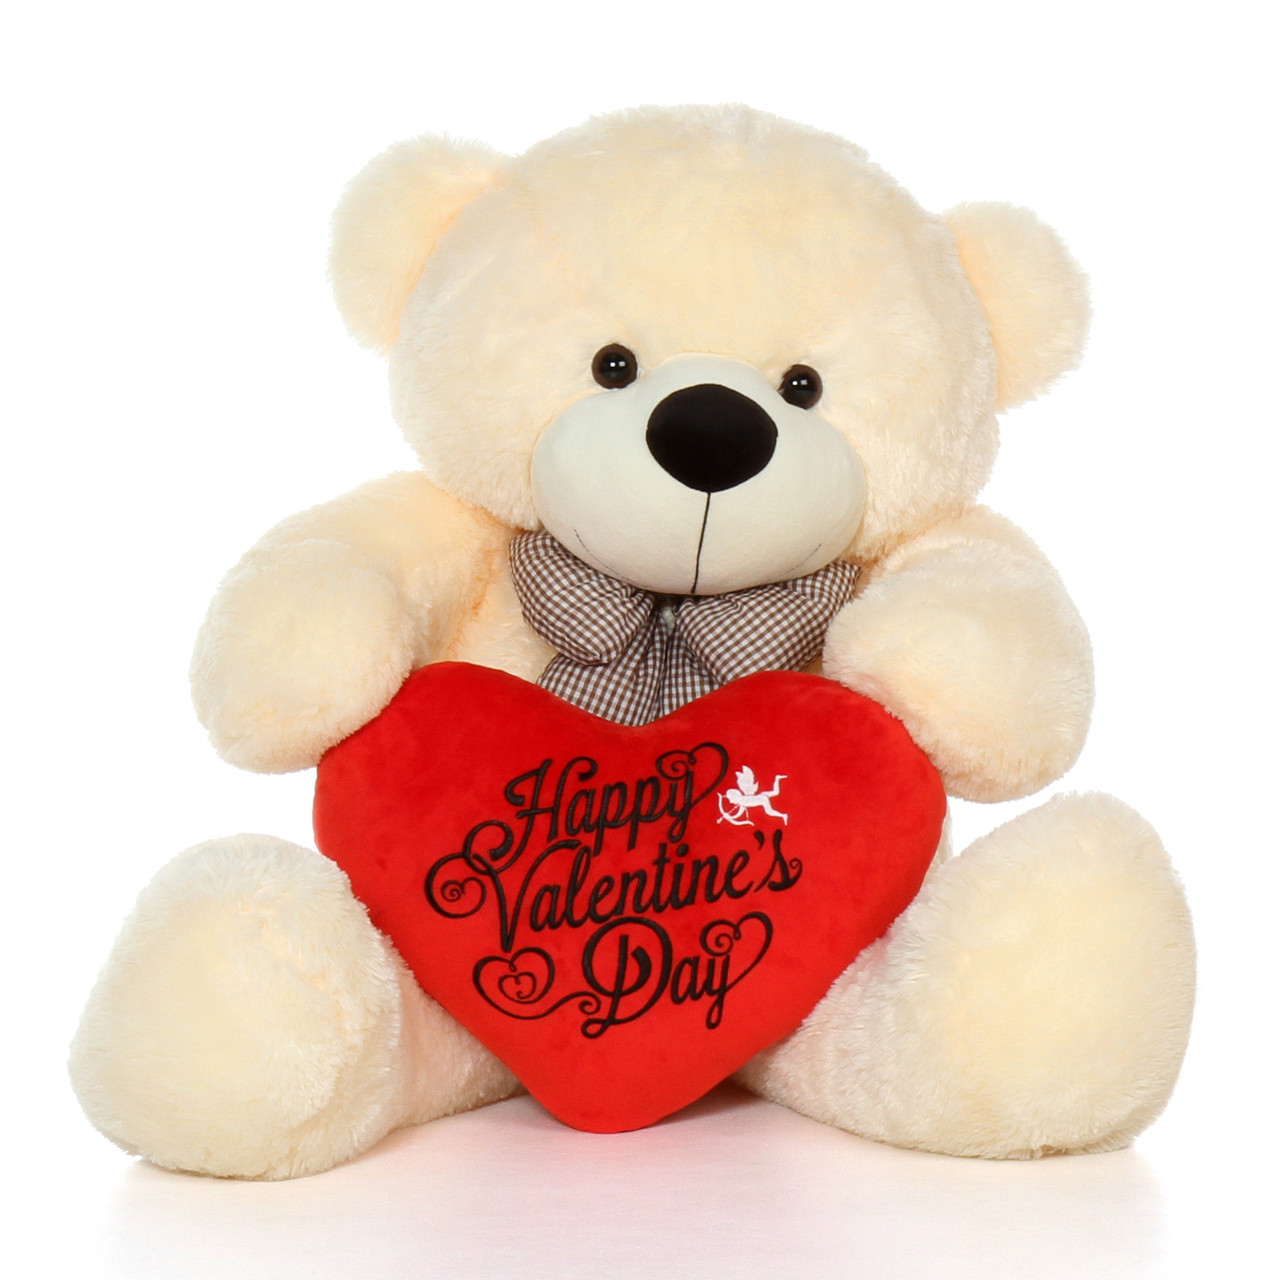 48in life size happy valentines day teddy bear vanilla cream cozy cuddles with plush red heart pillow - Giant Teddy Bear For Valentines Day